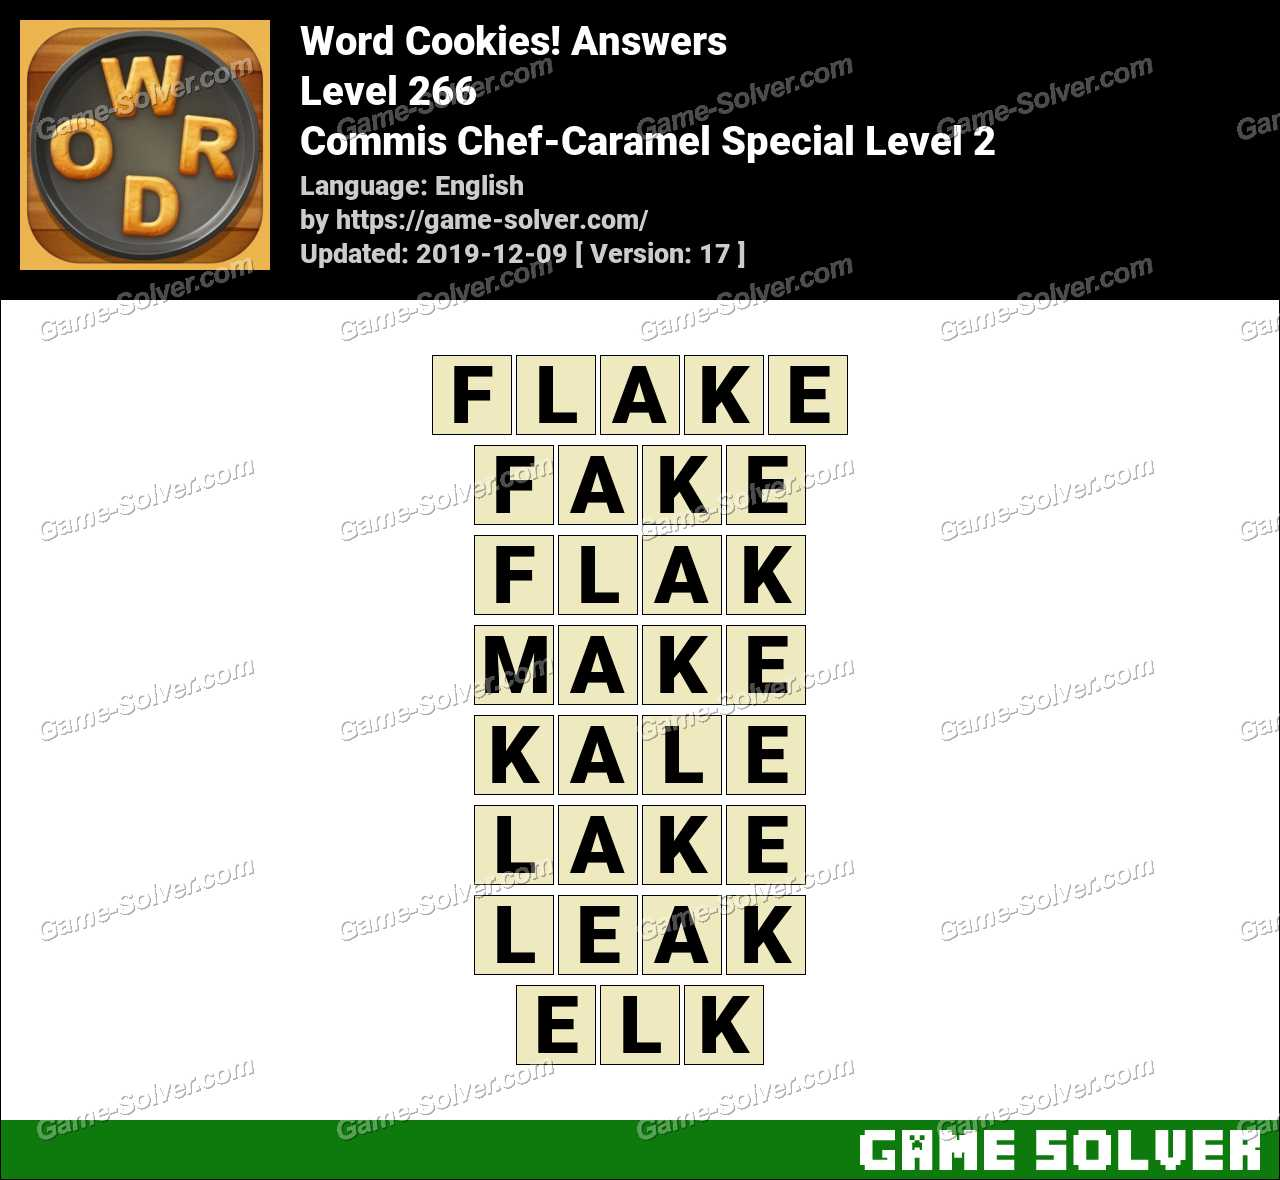 Word Cookies Commis Chef-Caramel Special Level 2 Answers